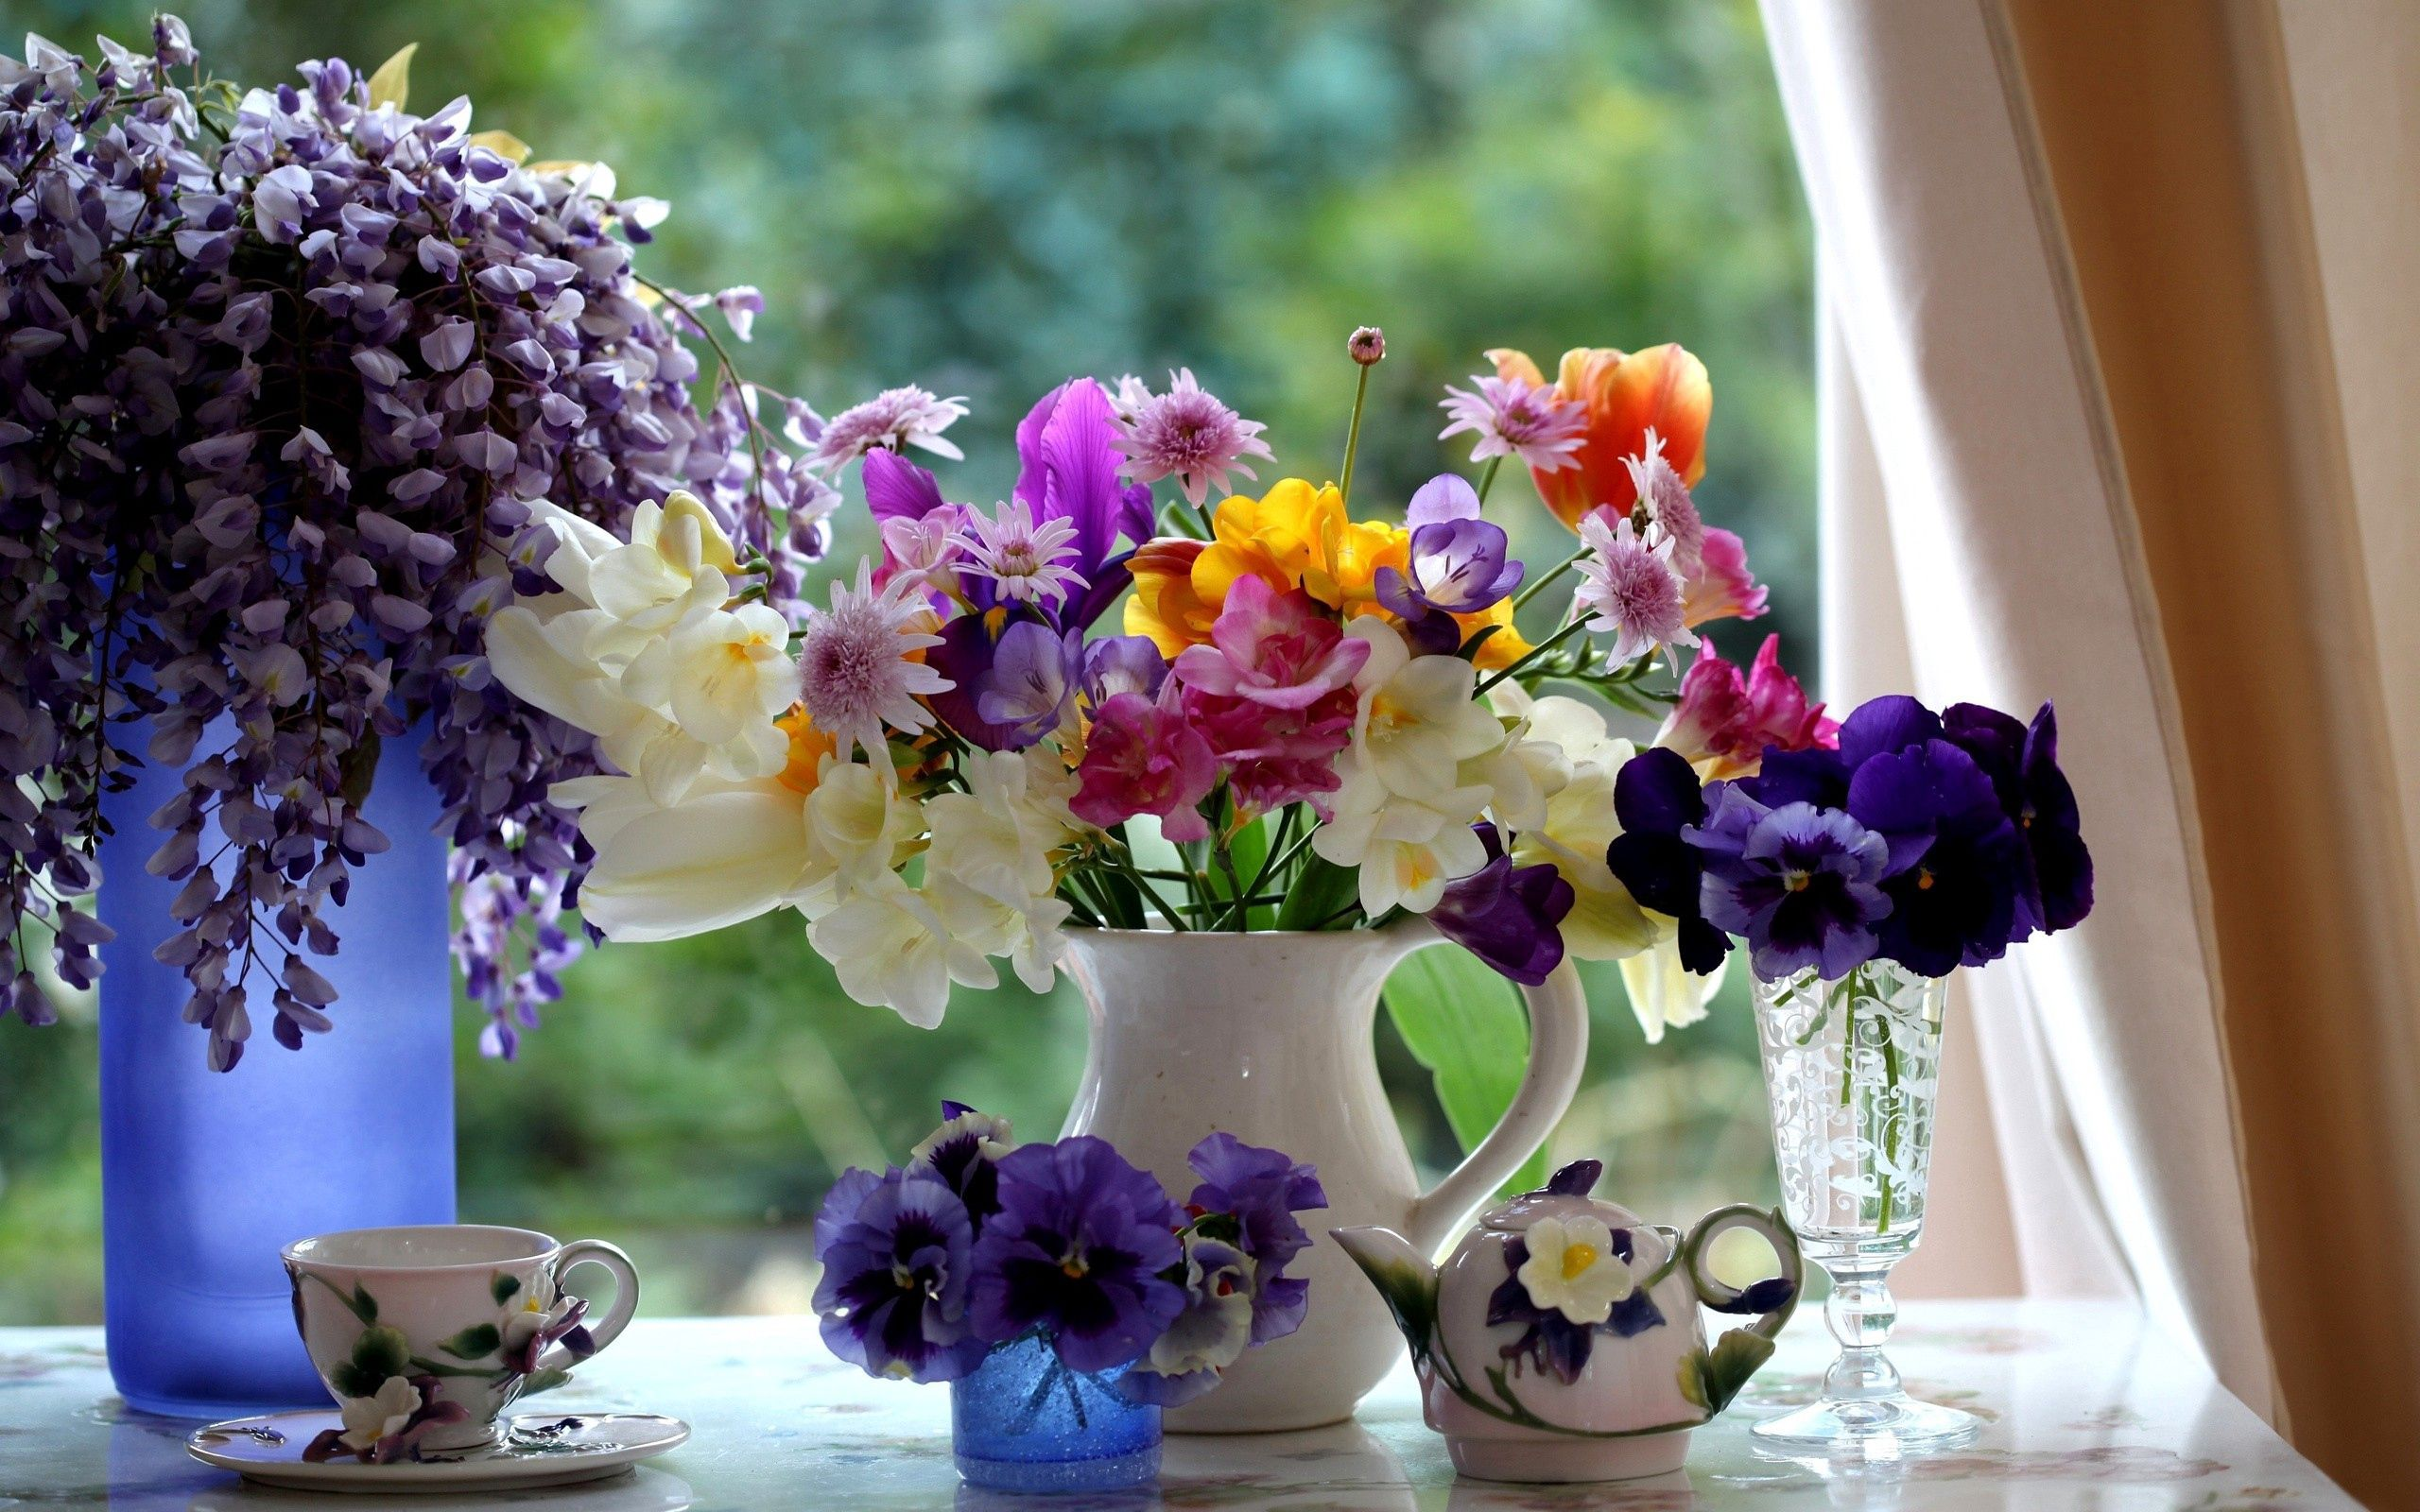 70507 download wallpaper Flowers, Bouquet, Window Sill, Windowsill, Composition, Teapot, Kettle screensavers and pictures for free